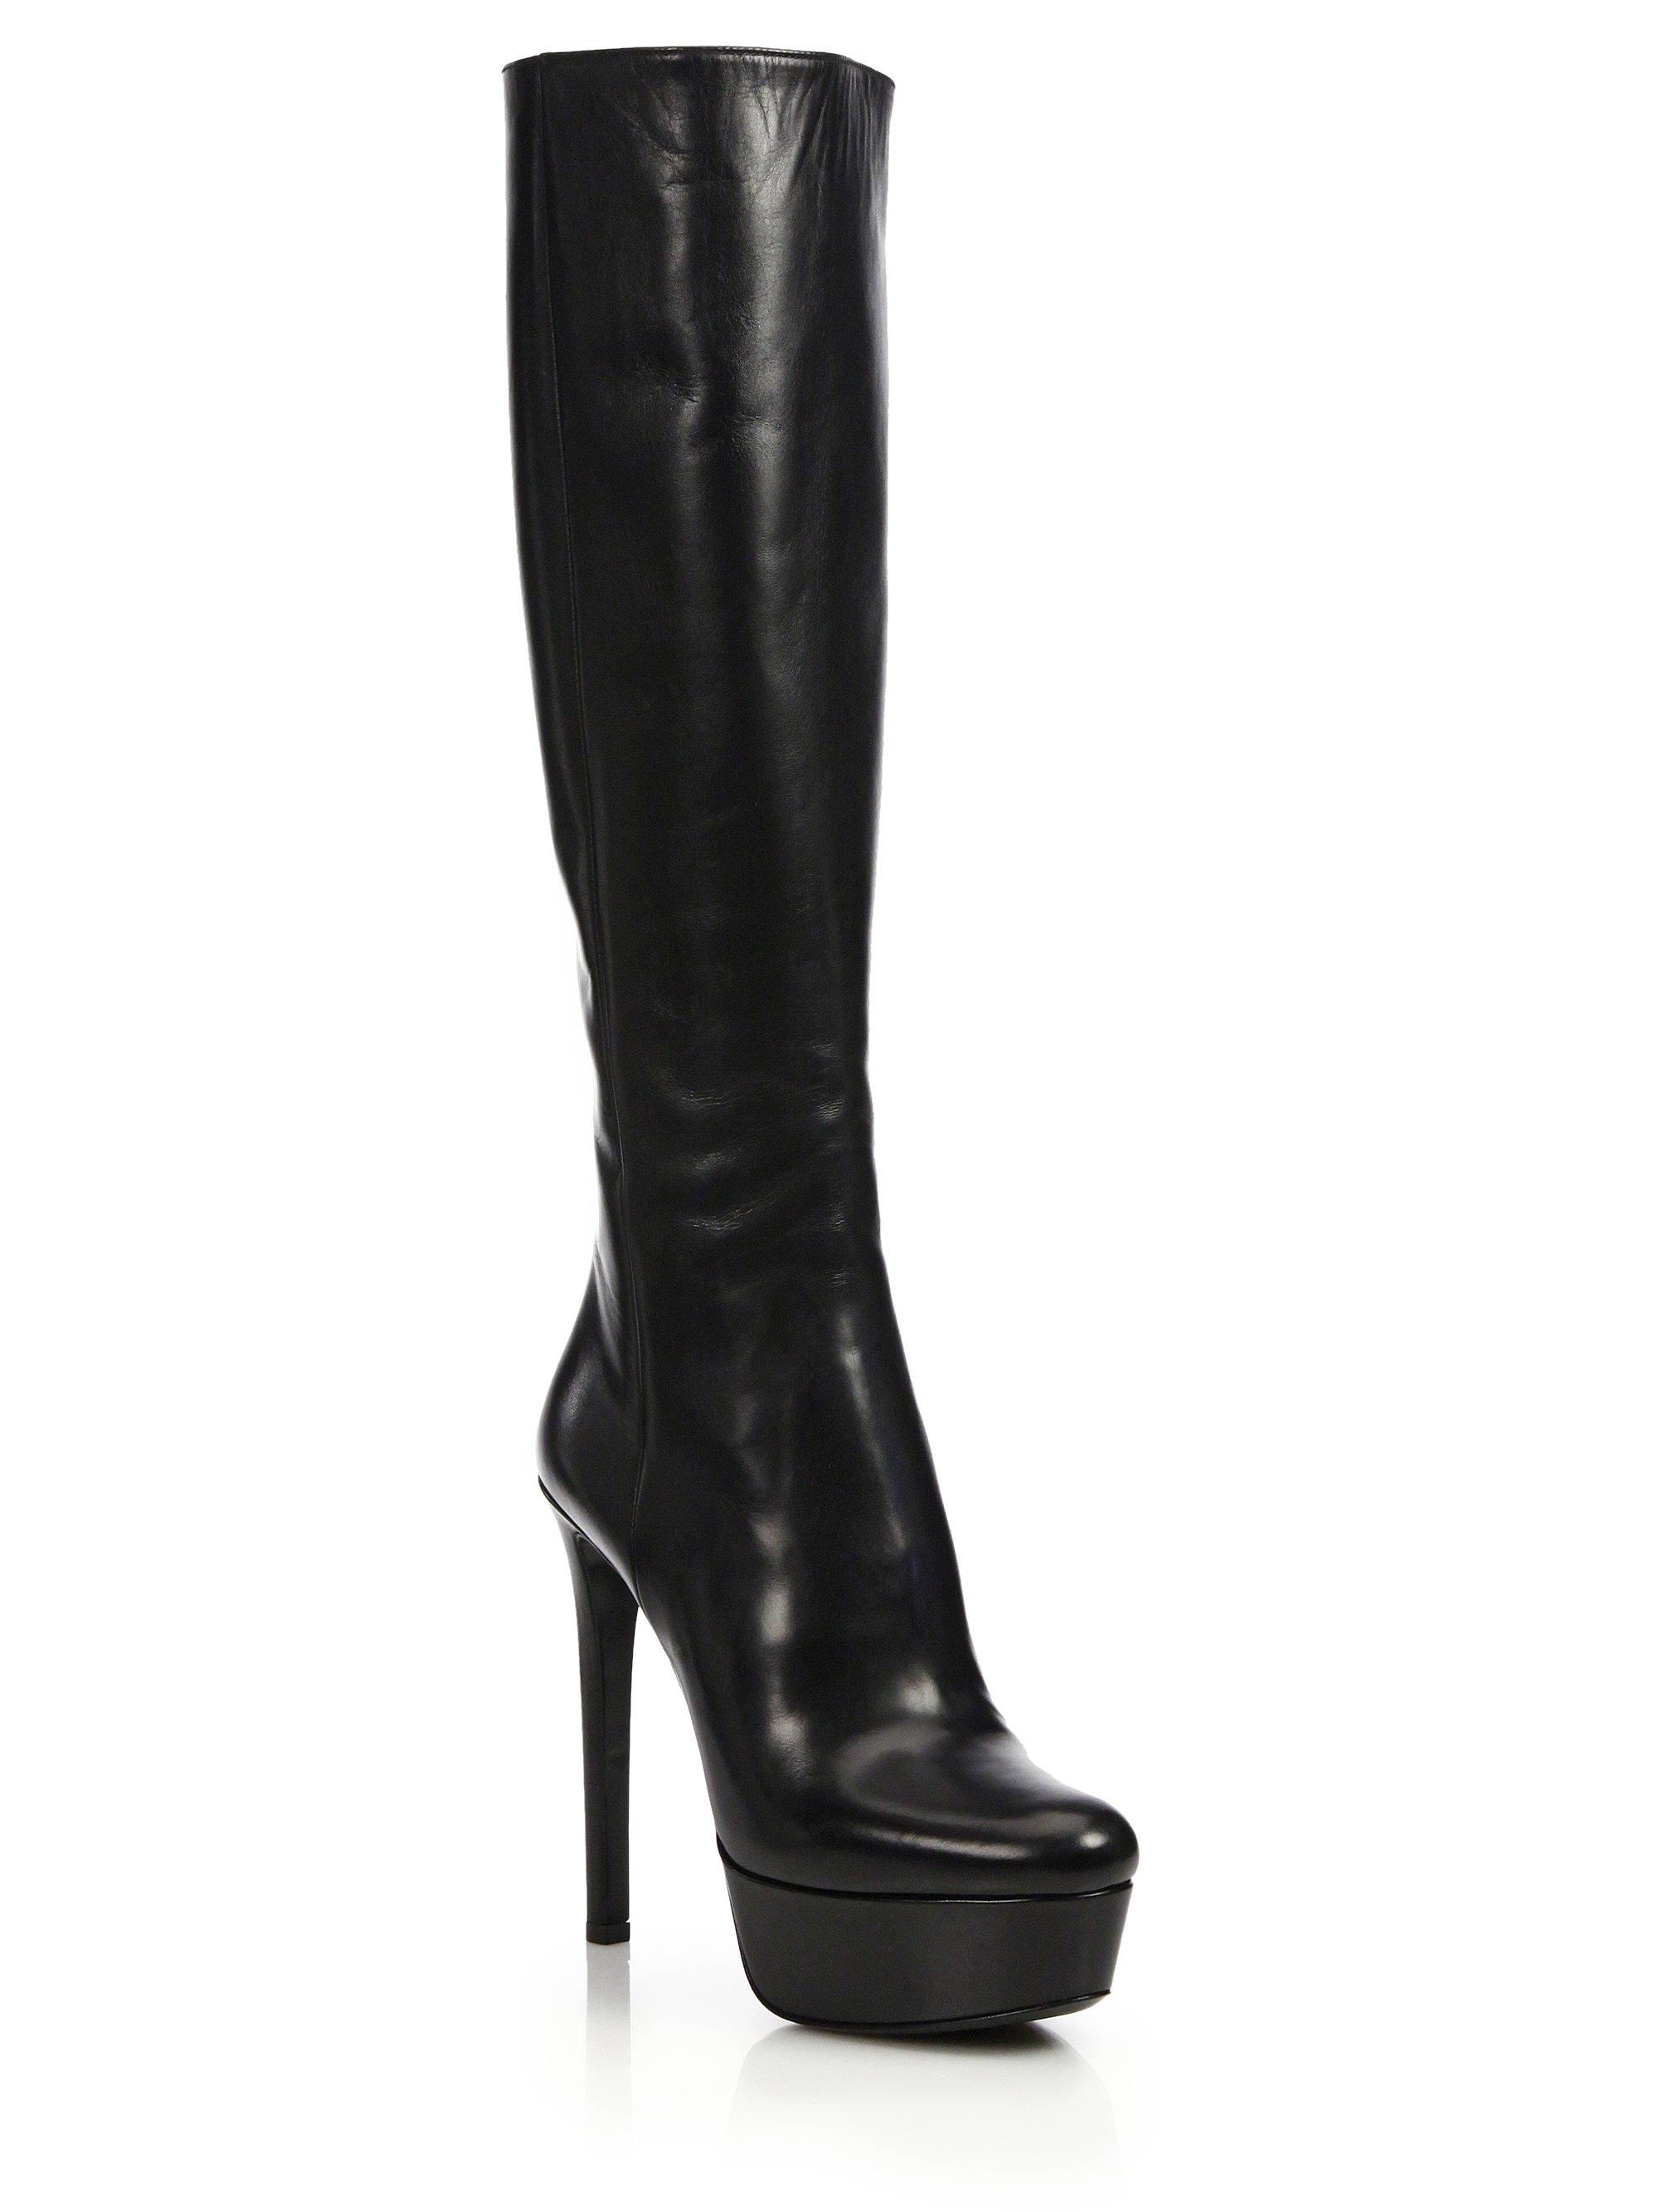 Prada Leather Knee-high Platform Boots in Black | Lyst